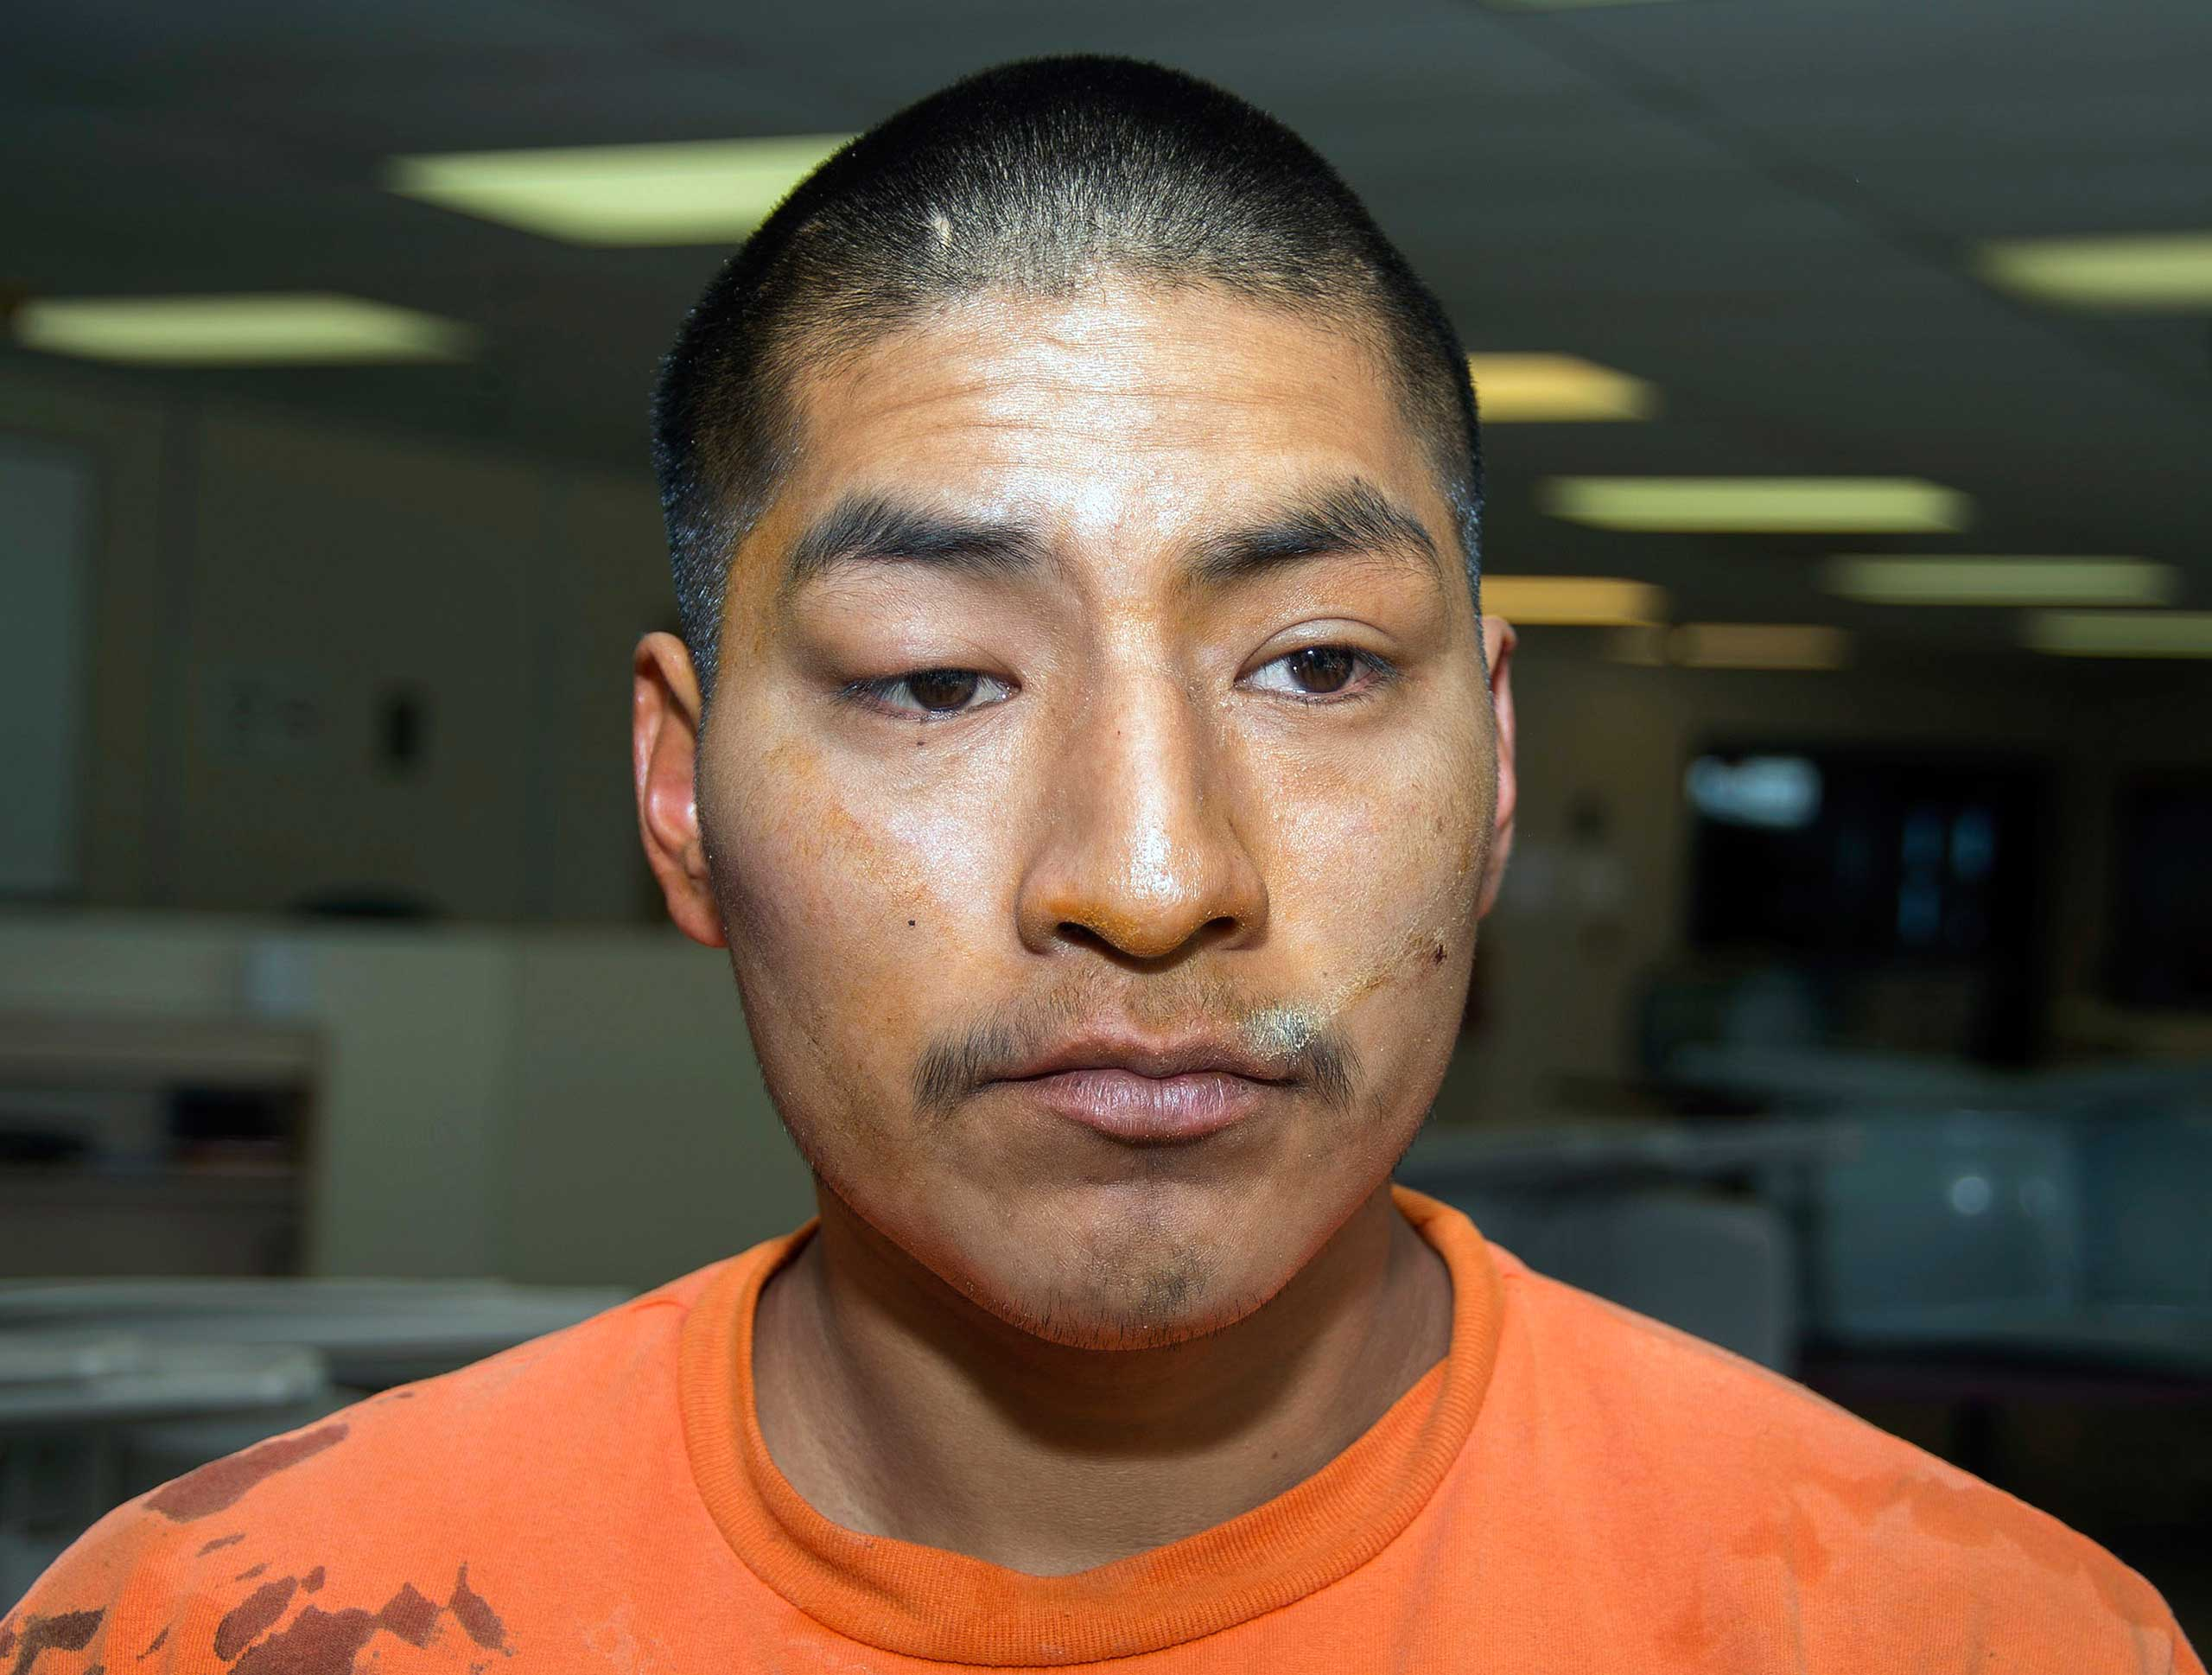 This Jan. 30, 2014, photo provided by the Arizona Department of Corrections shows inmate Jacob Harvey, accused of attacking a state prison teacher in Florence, Ariz. (Arizona Department of Corrections—AP)